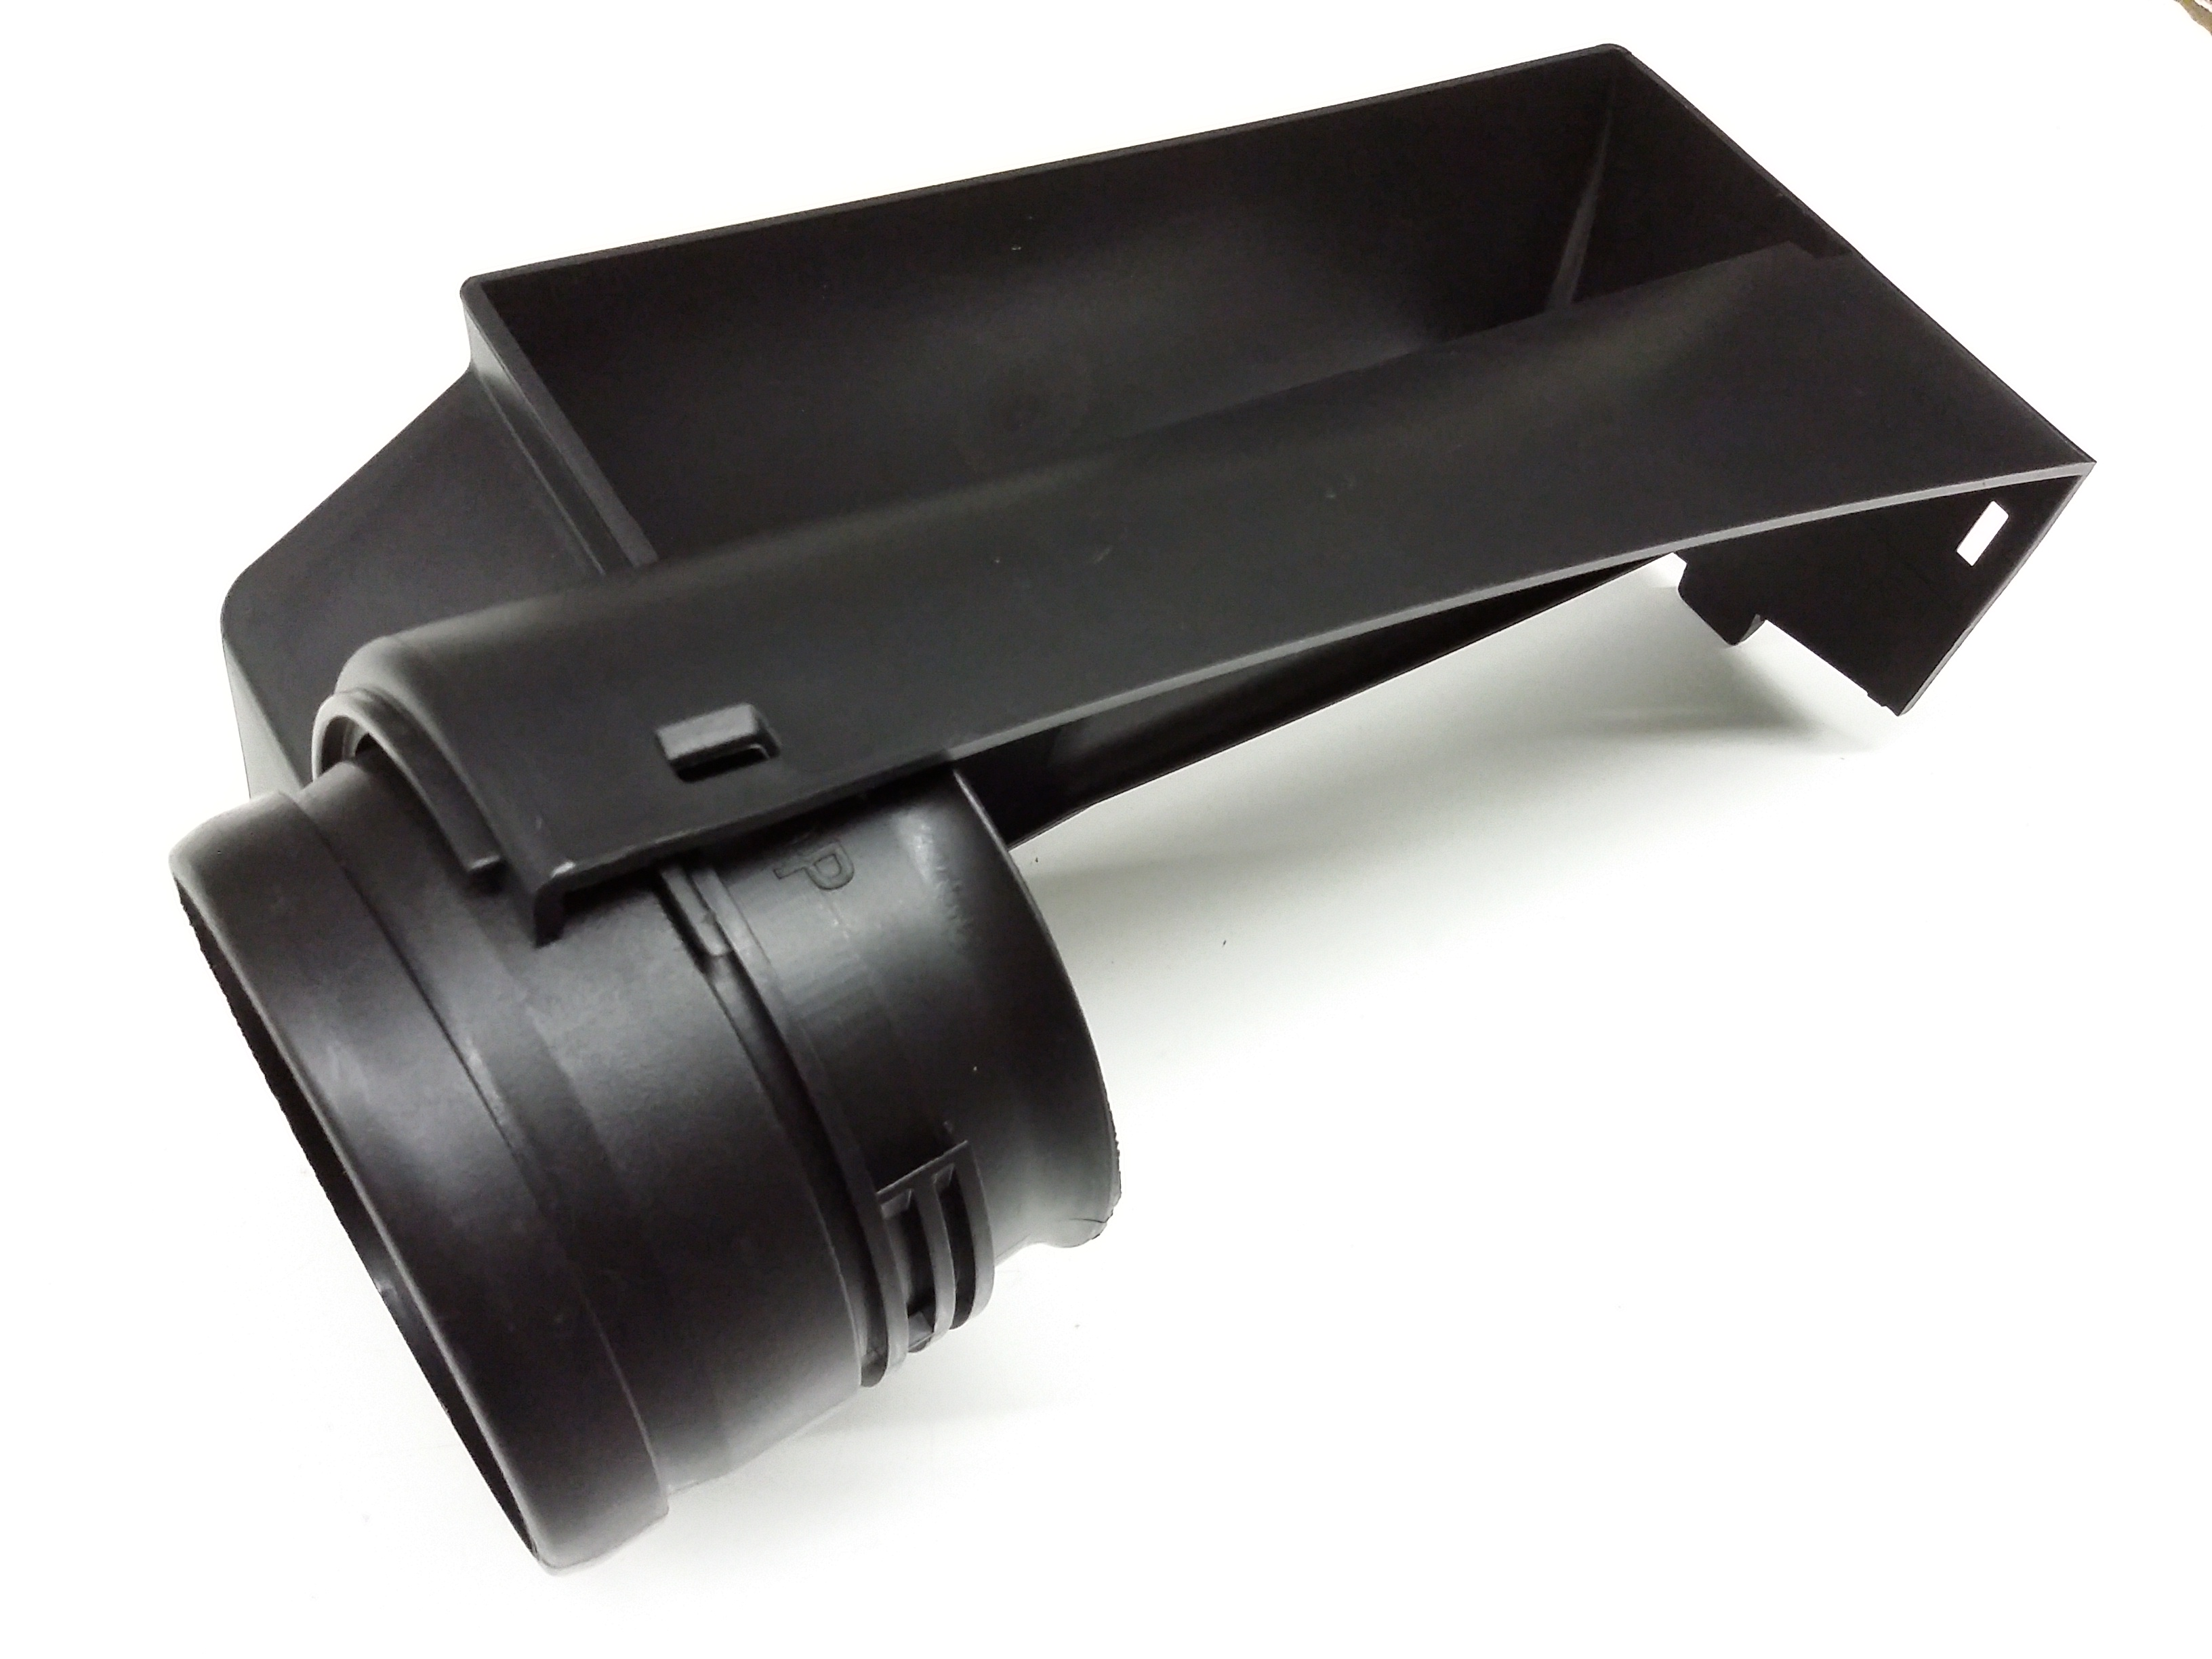 Air Intake For 2013 Volkswagen Sportwagen Sheppard Motors